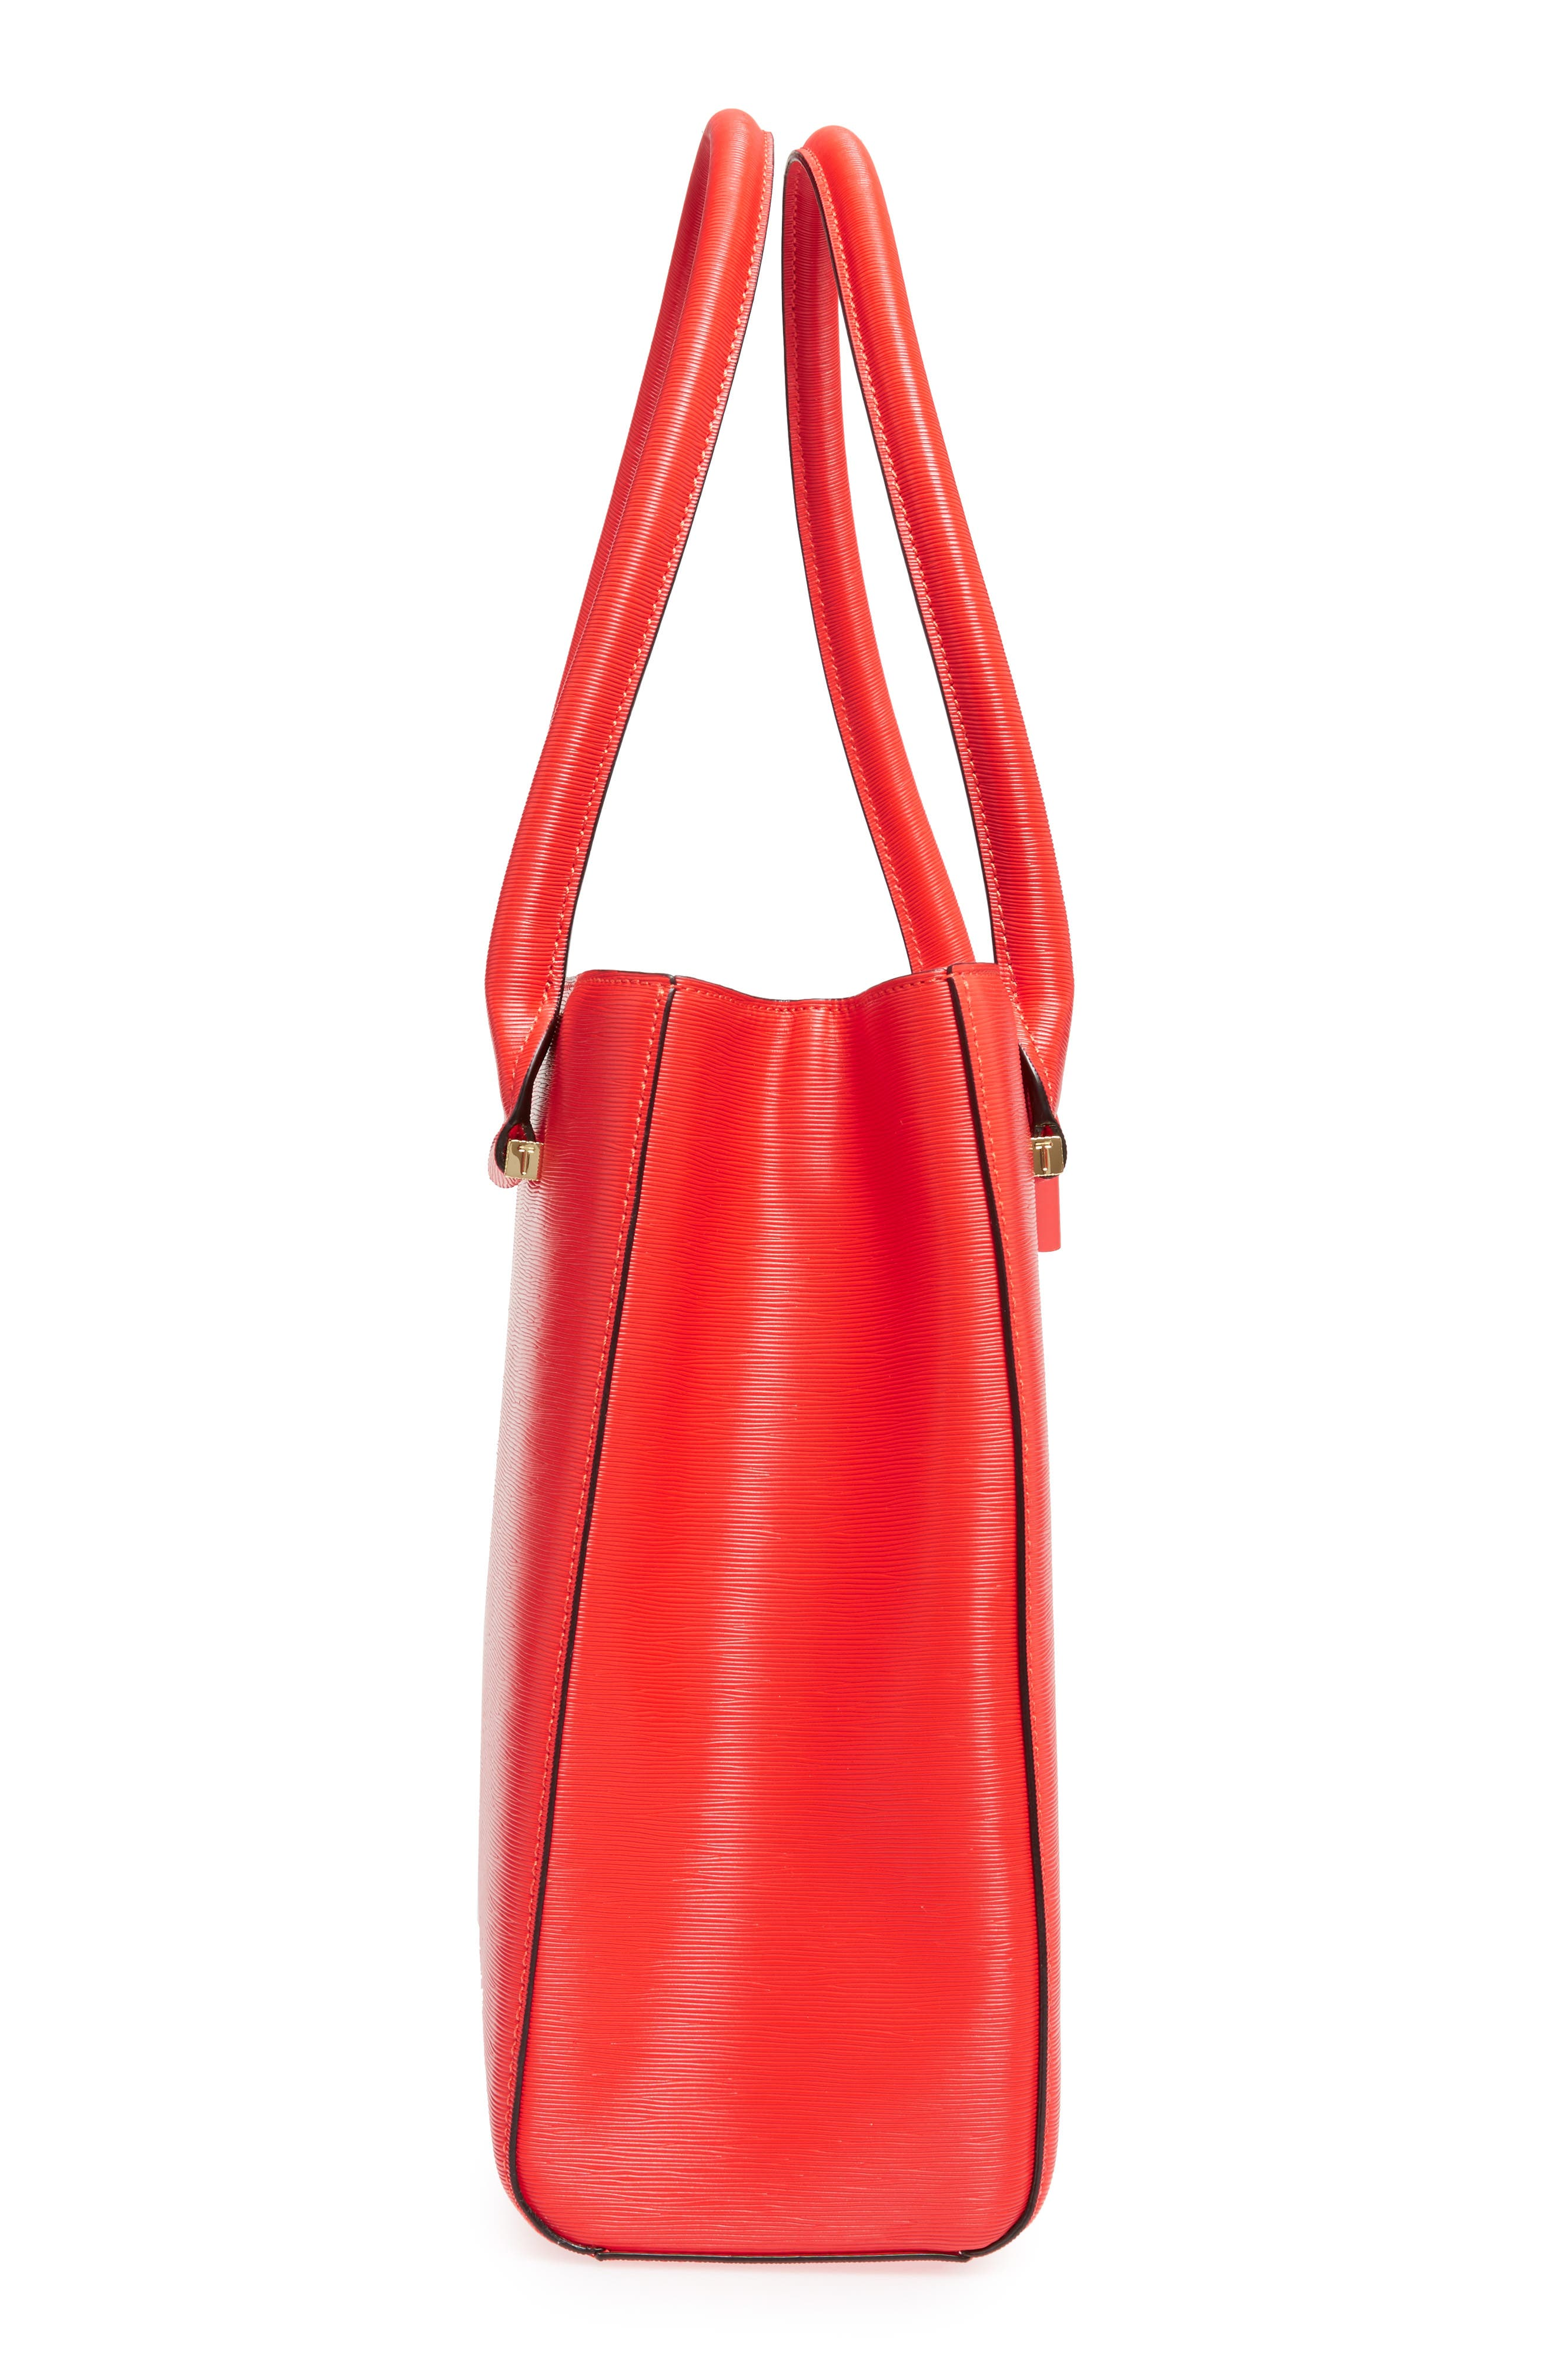 Callaa Bow Leather Shopper,                             Alternate thumbnail 4, color,                             Bright Red